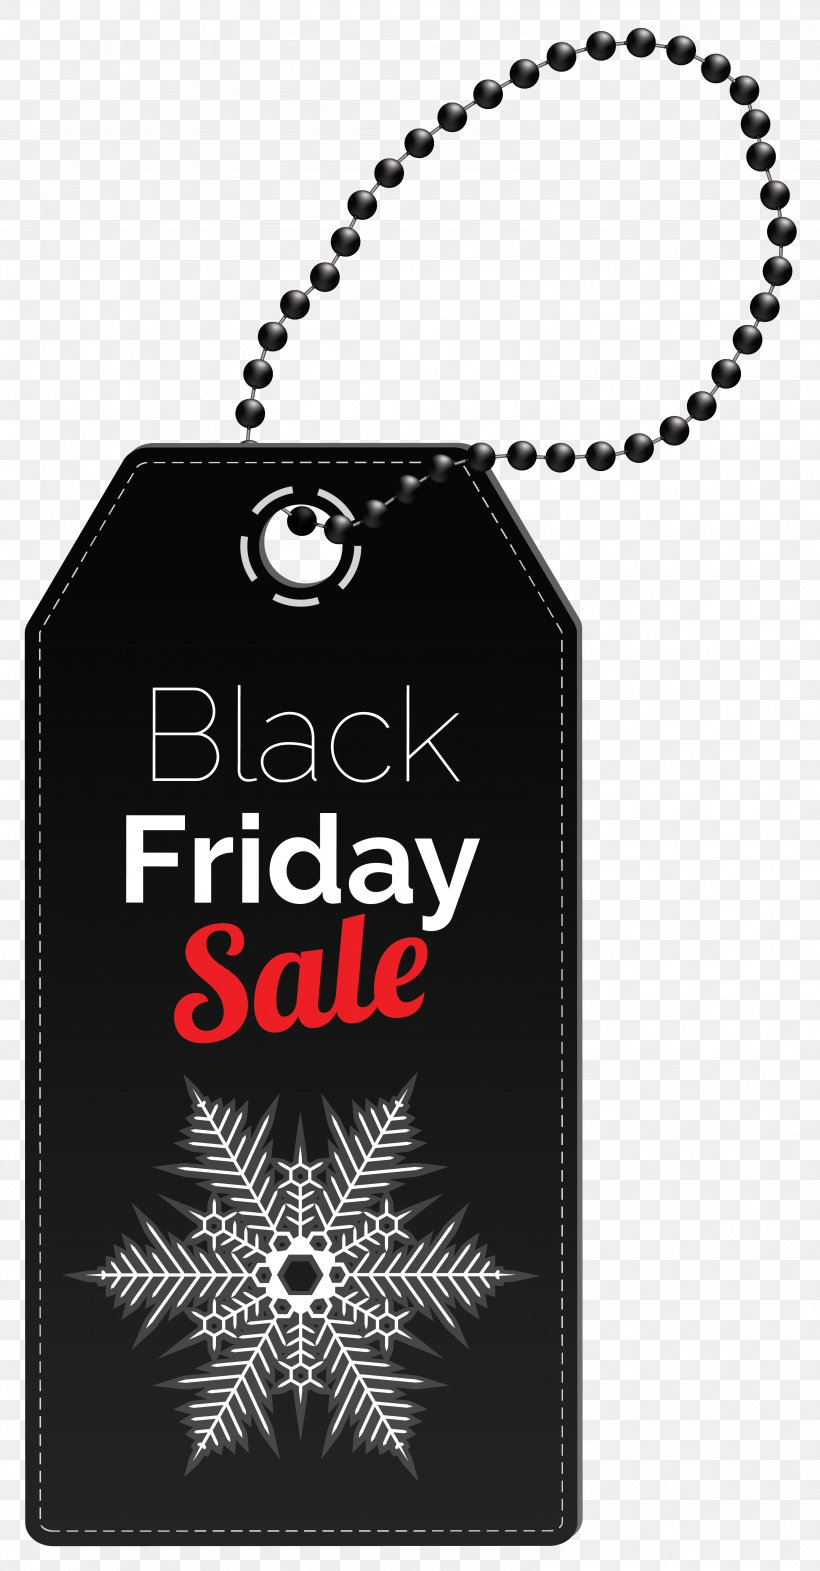 Black Friday Sale Clip Art, PNG, 3174x6081px, Black Friday.